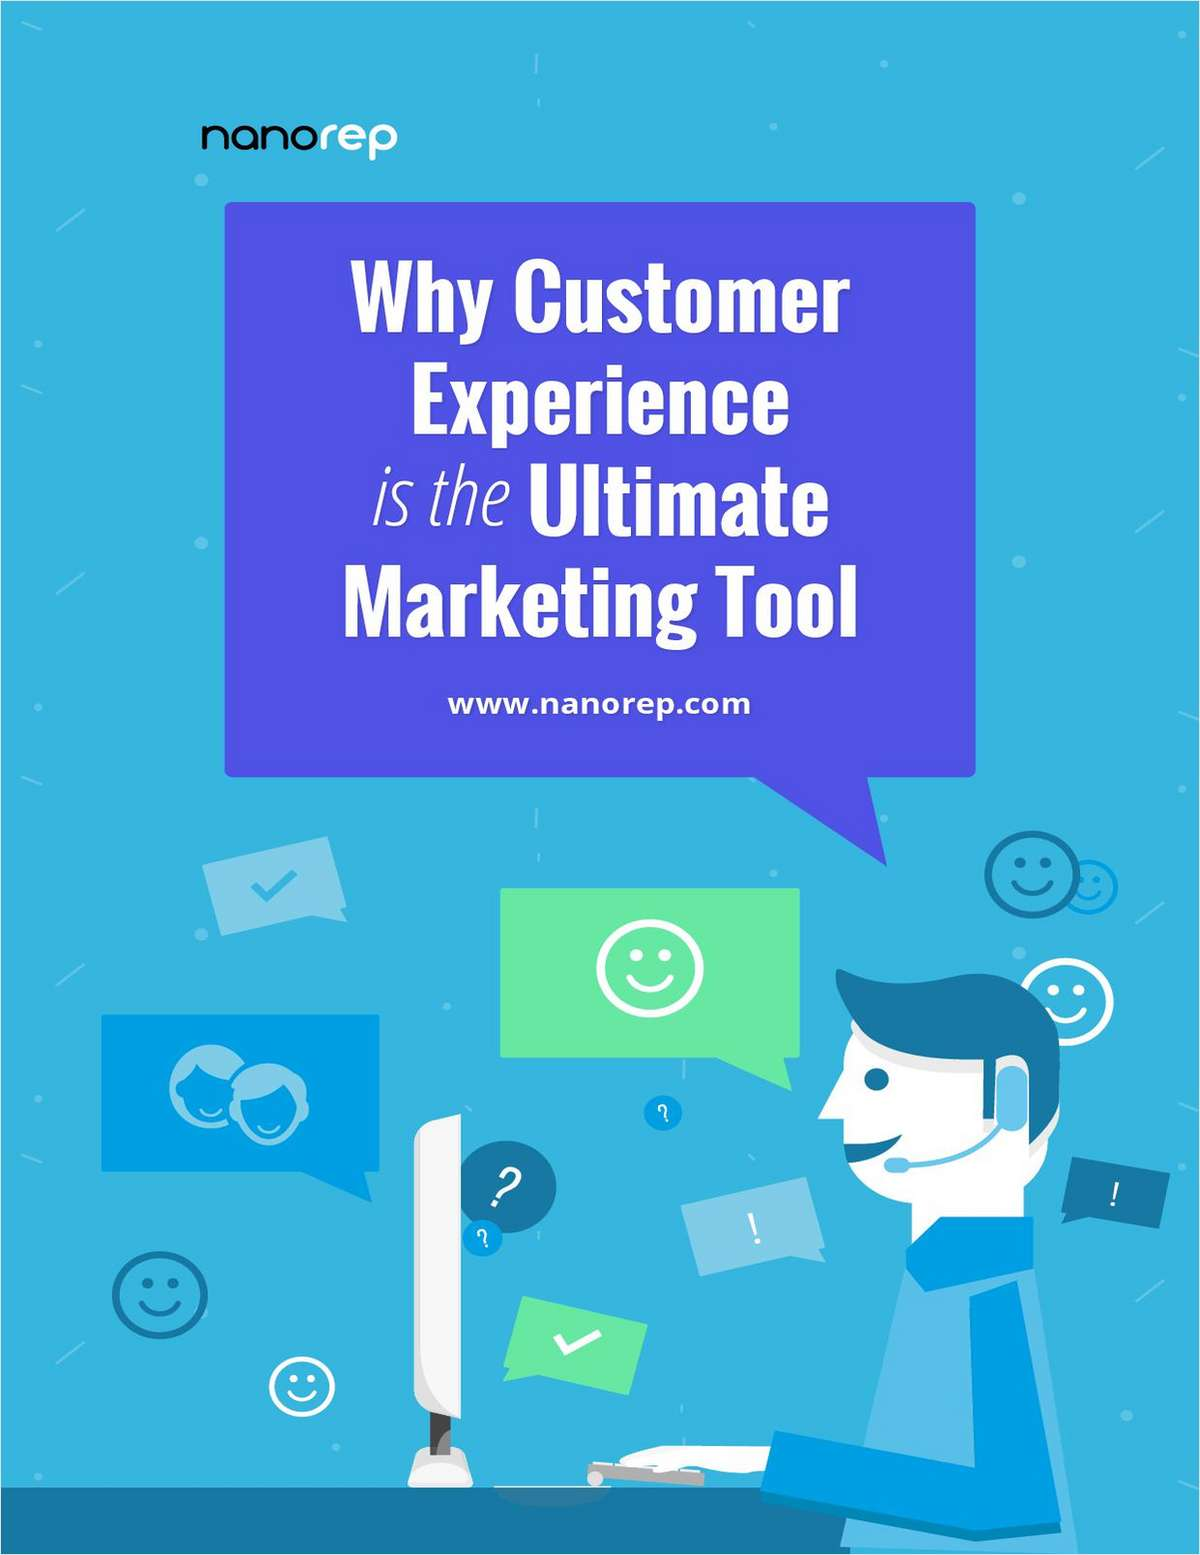 Why Customer Experience is the Ultimate Marketing Tool